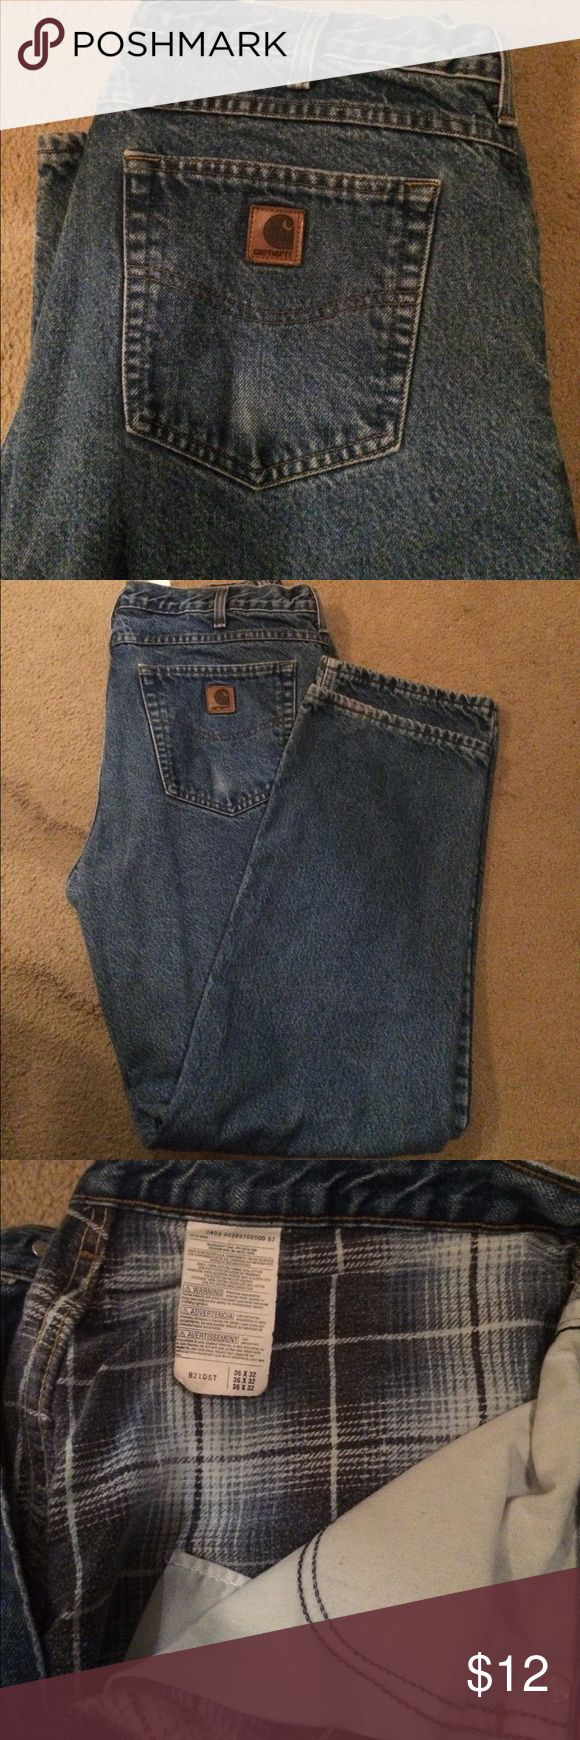 Carhart jeans Gently used lined Carhart jeans 36x32 Jeans Bootcut